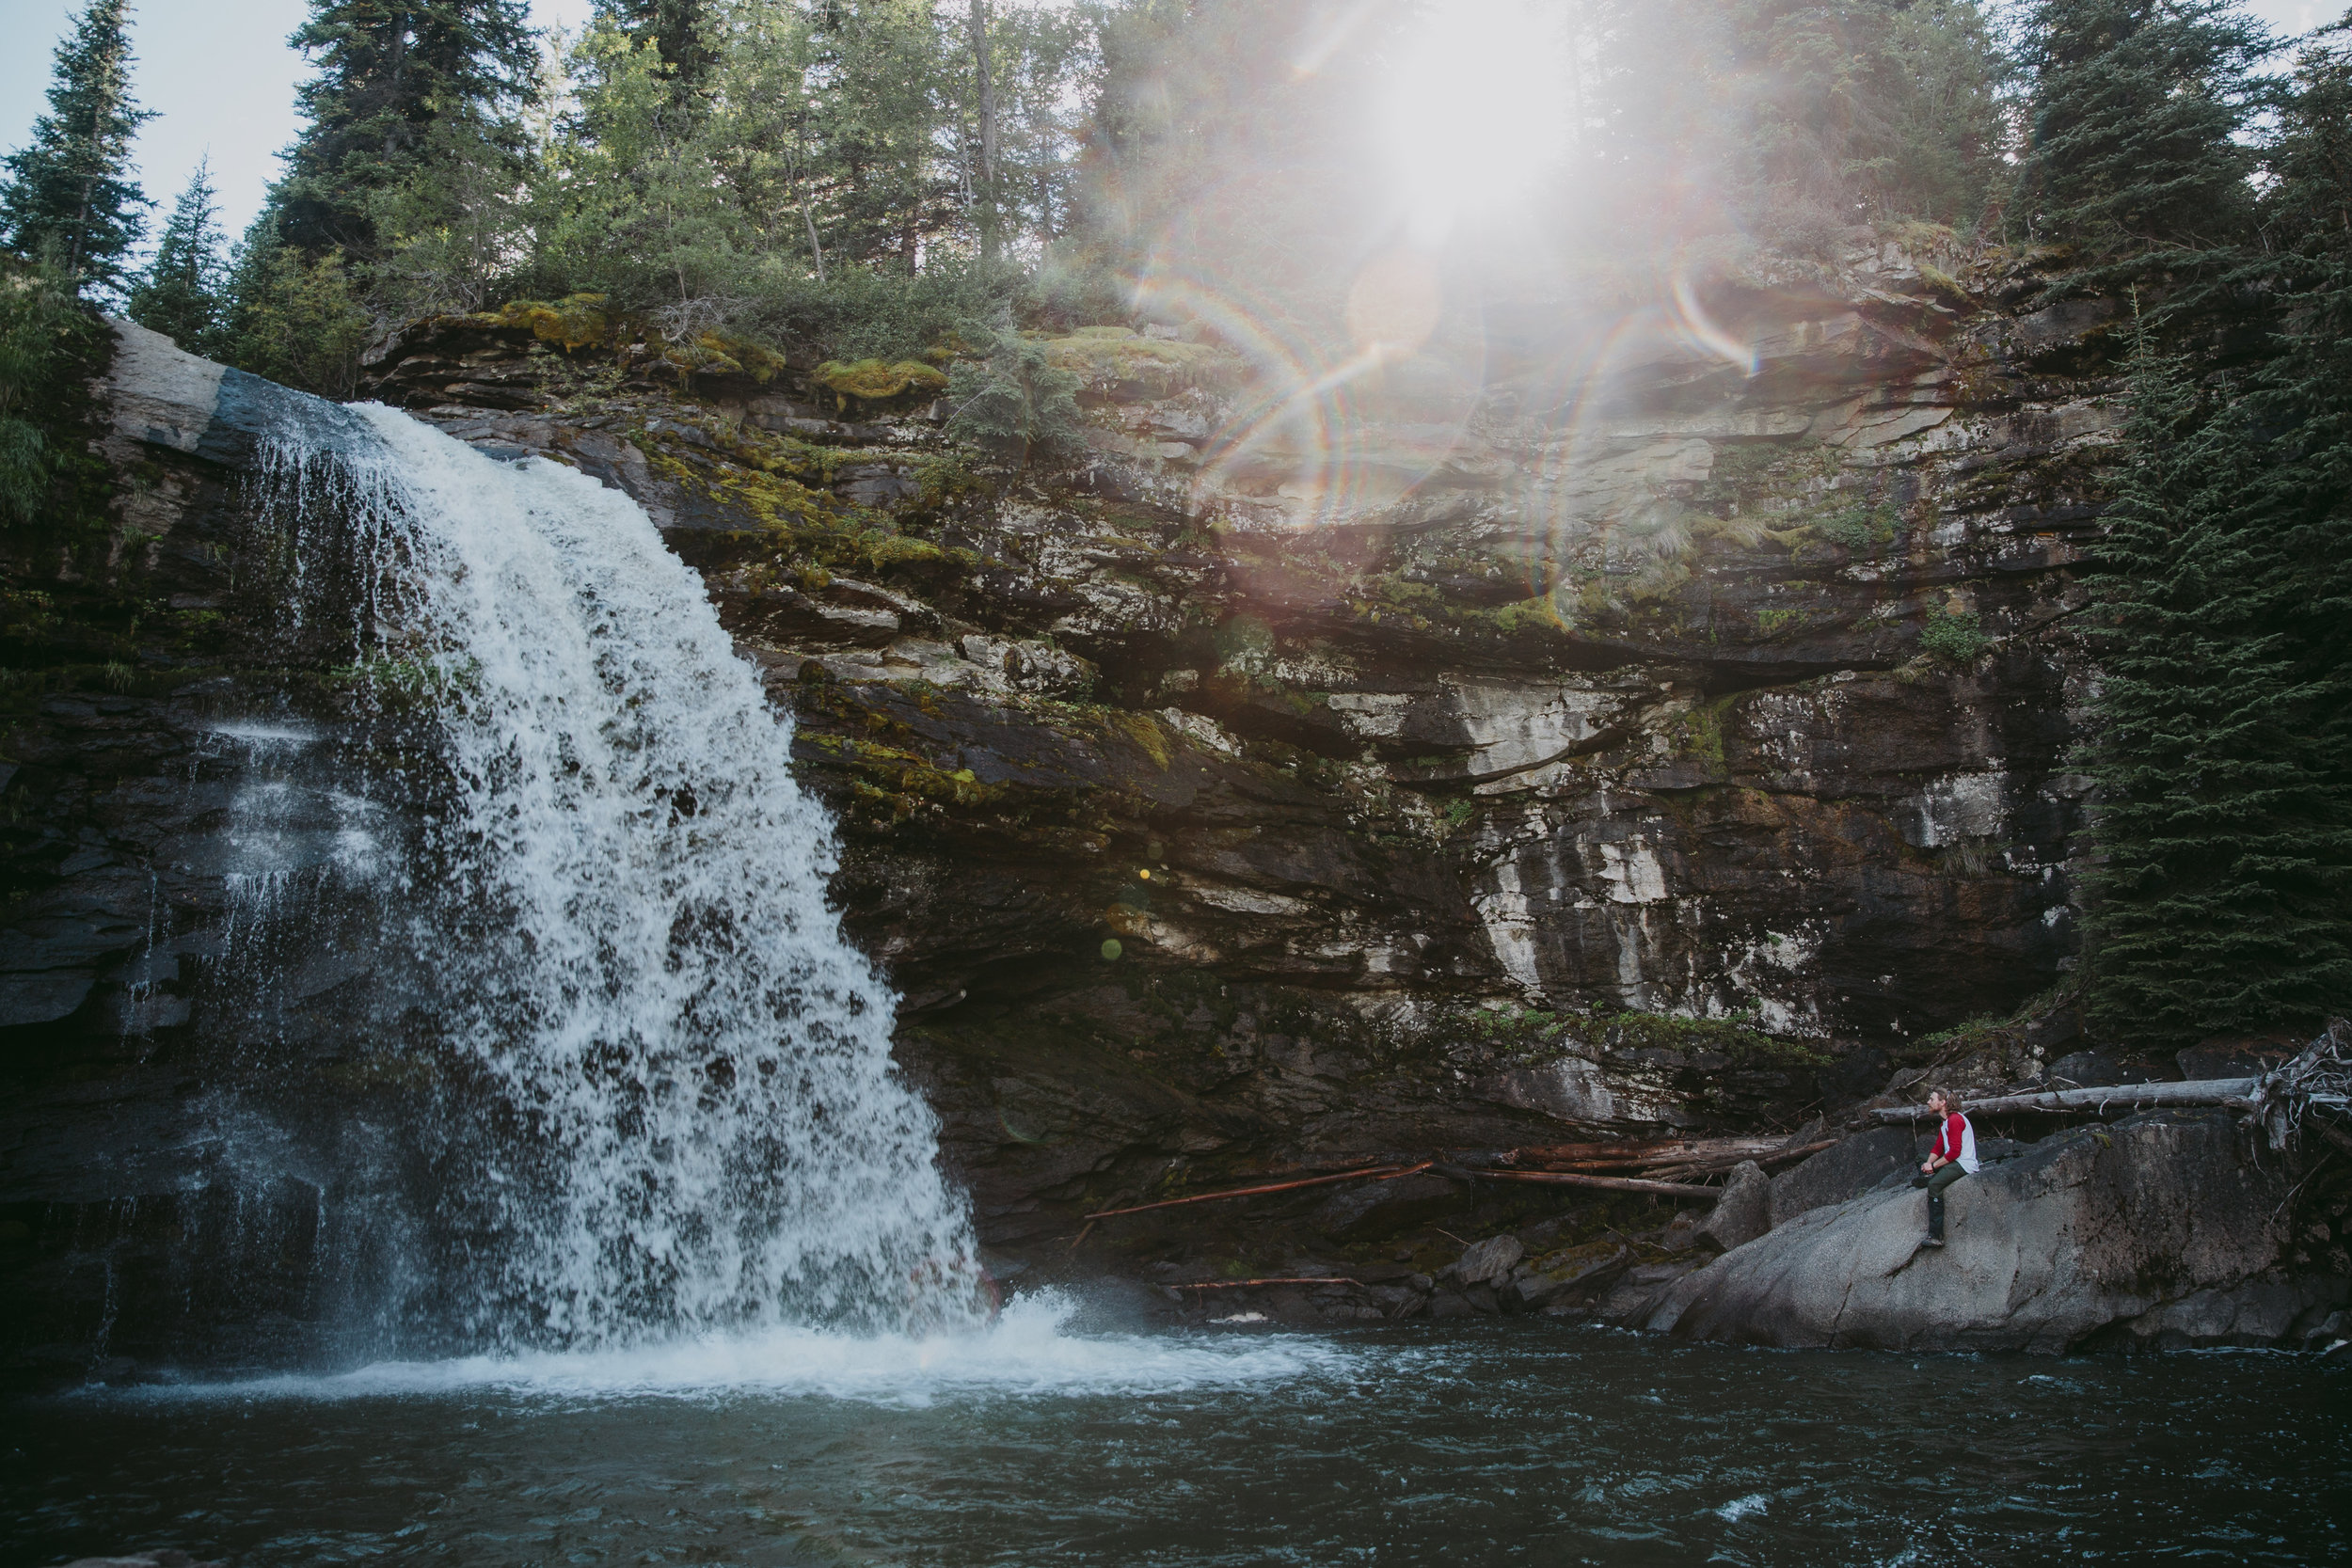 MikeSeehagel-commecial-lifestyle-photography-canada-IMG_4790.jpg